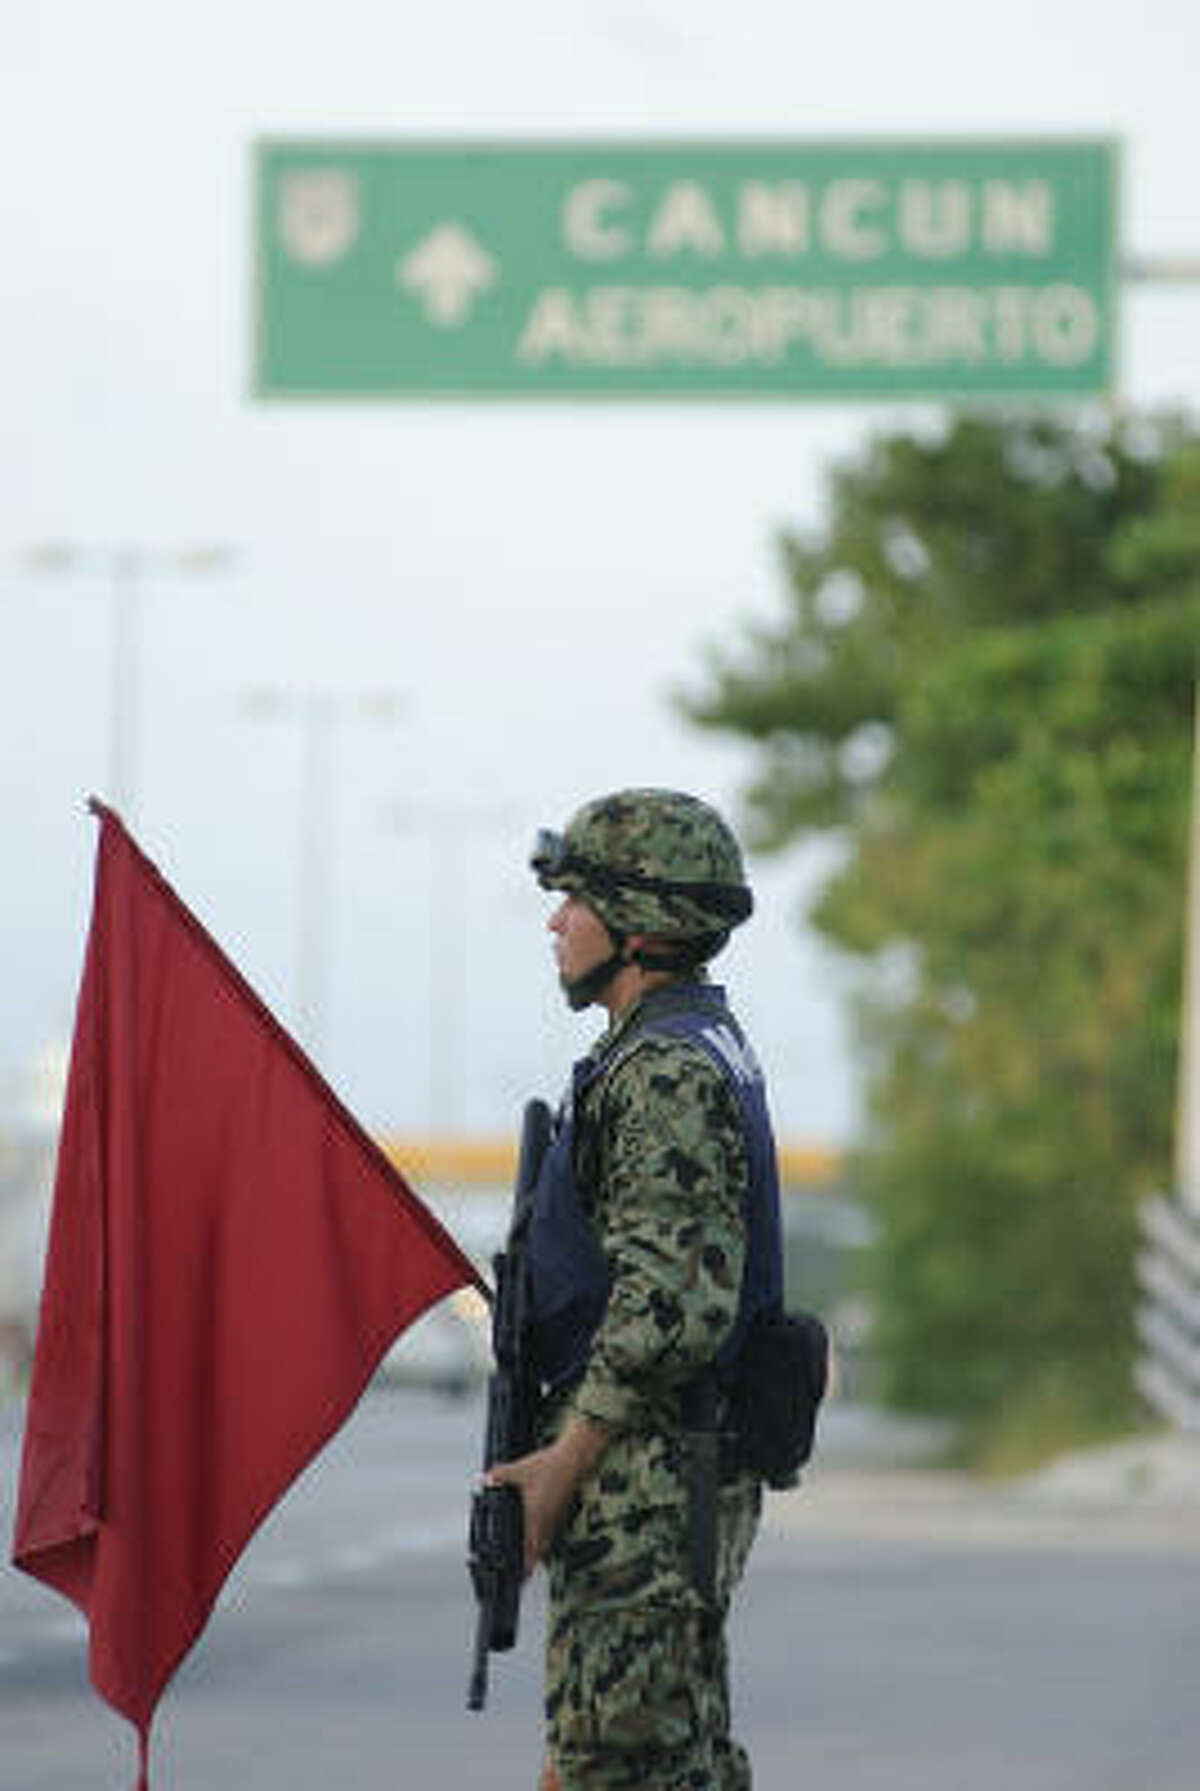 A Mexican official monitors a highway checkpoint south of town, searching for drugs and weapons after the general's death.